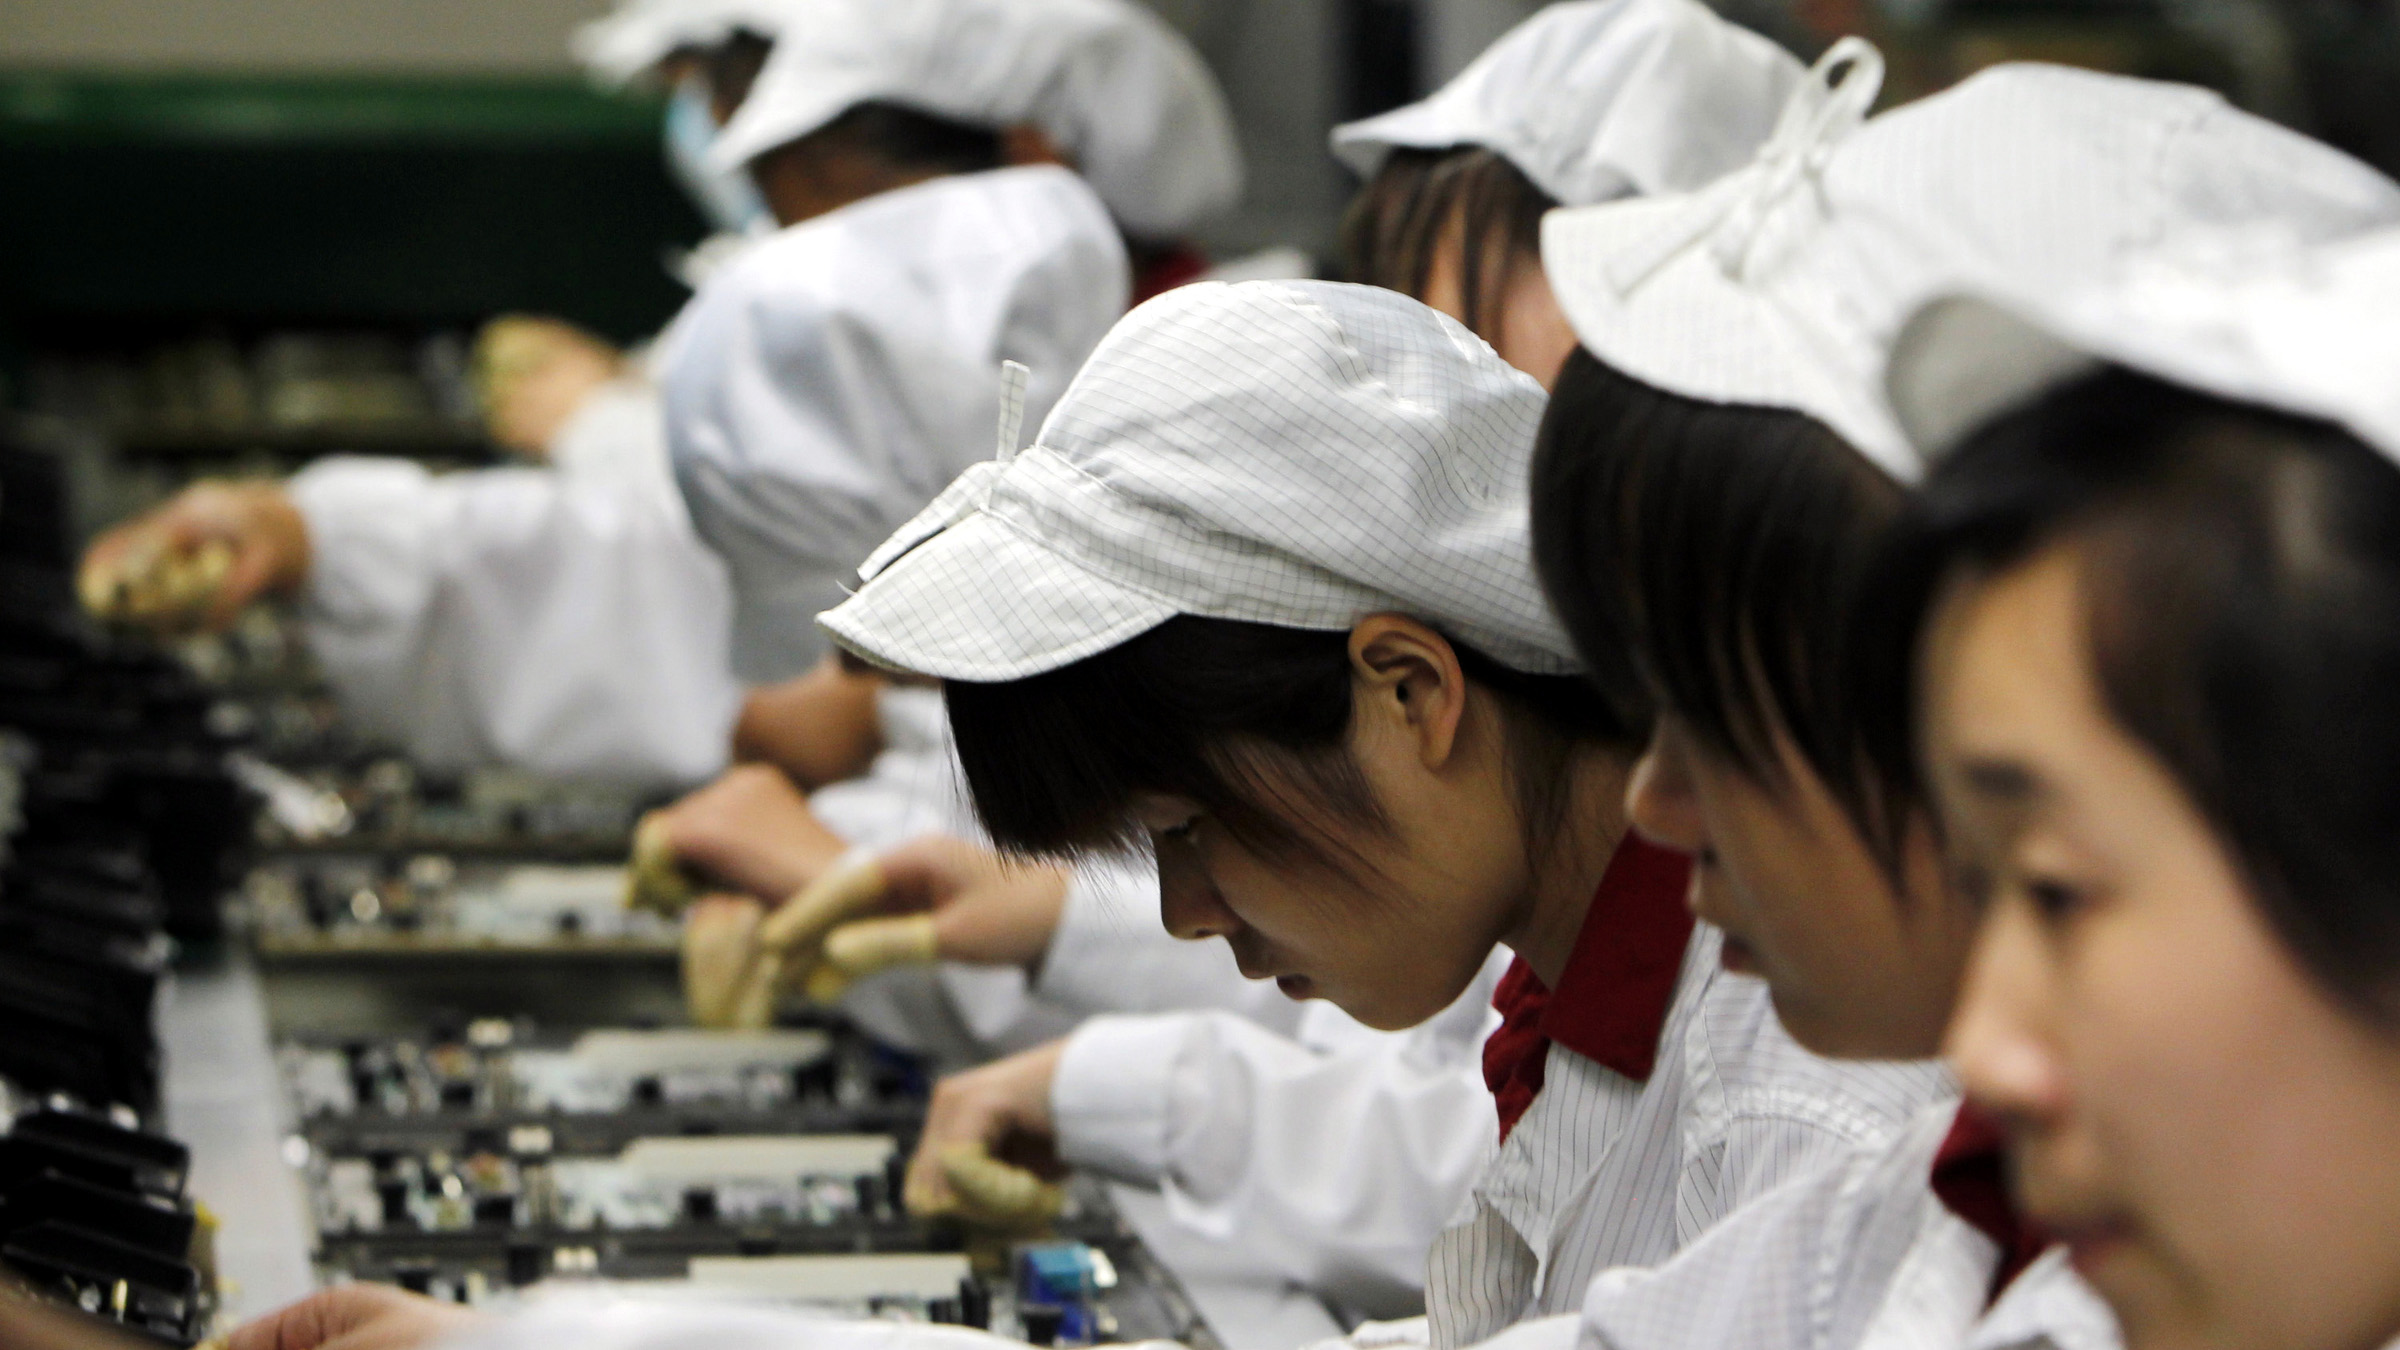 Staffs works on the production line at the Foxconn complex in the southern Chinese city of Shenzhen, Southern city in China, Wednesday, May 26, 2010. The head of the giant electronics company whose main facility in China has been battered by a string of worker suicides opened the plant's gates to scores of reporters Wednesday, hours after saying that intense media attention could make the situation worse.  ()